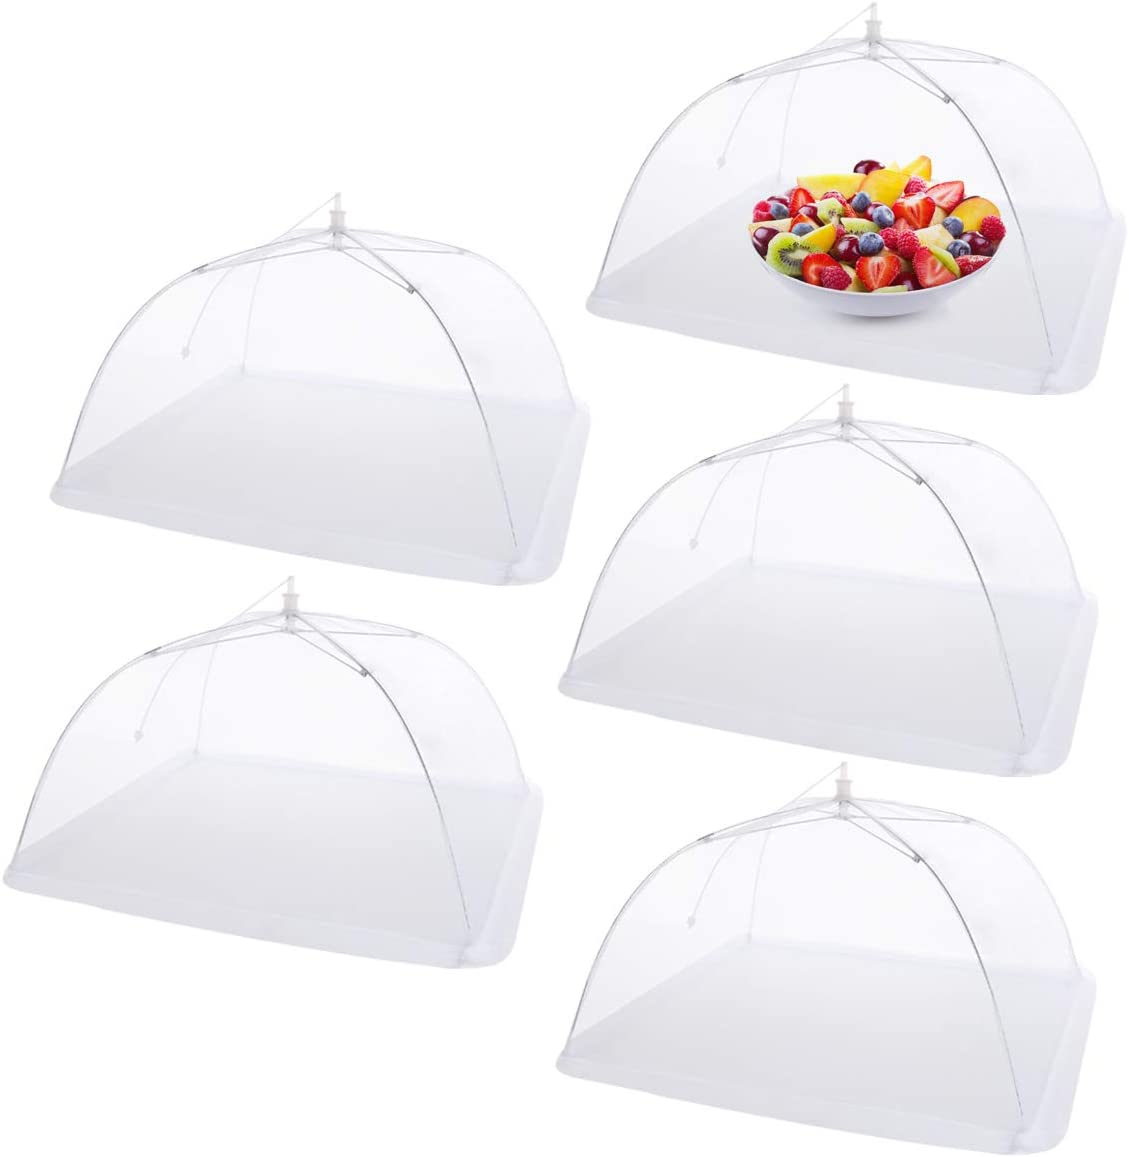 Mesh Food Covers for Outdoors 17'' Pop-Up Food Cover Tents Umbrella Reusable Protector Collapsible Screens Canopies for Plates Parties Picnics Bugs, 5 Pack